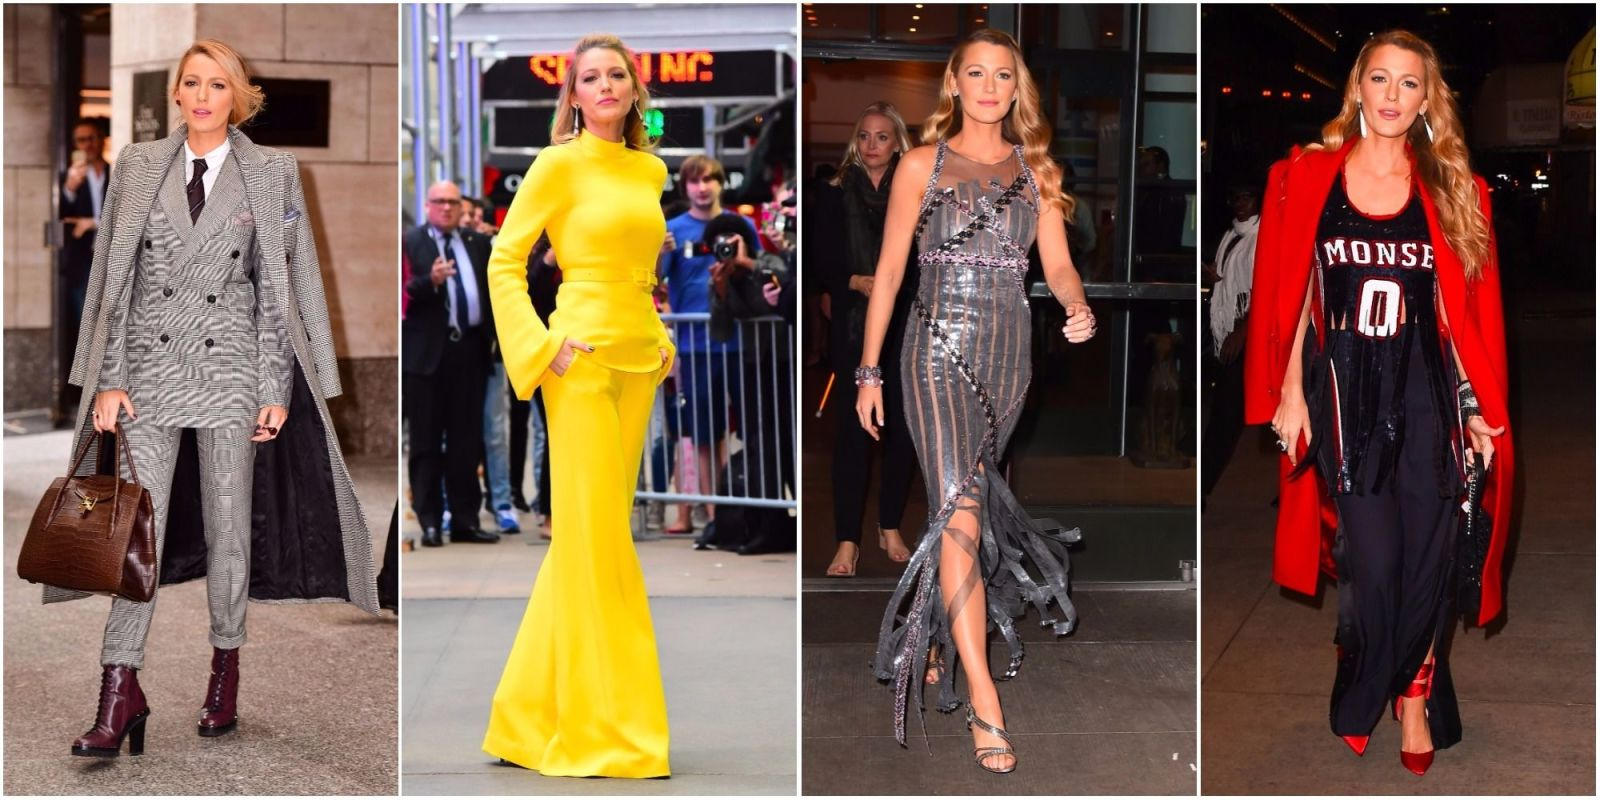 Blake Lively Just Wore Seven Outfits In One Day And Ryan Reynolds Is In Awe